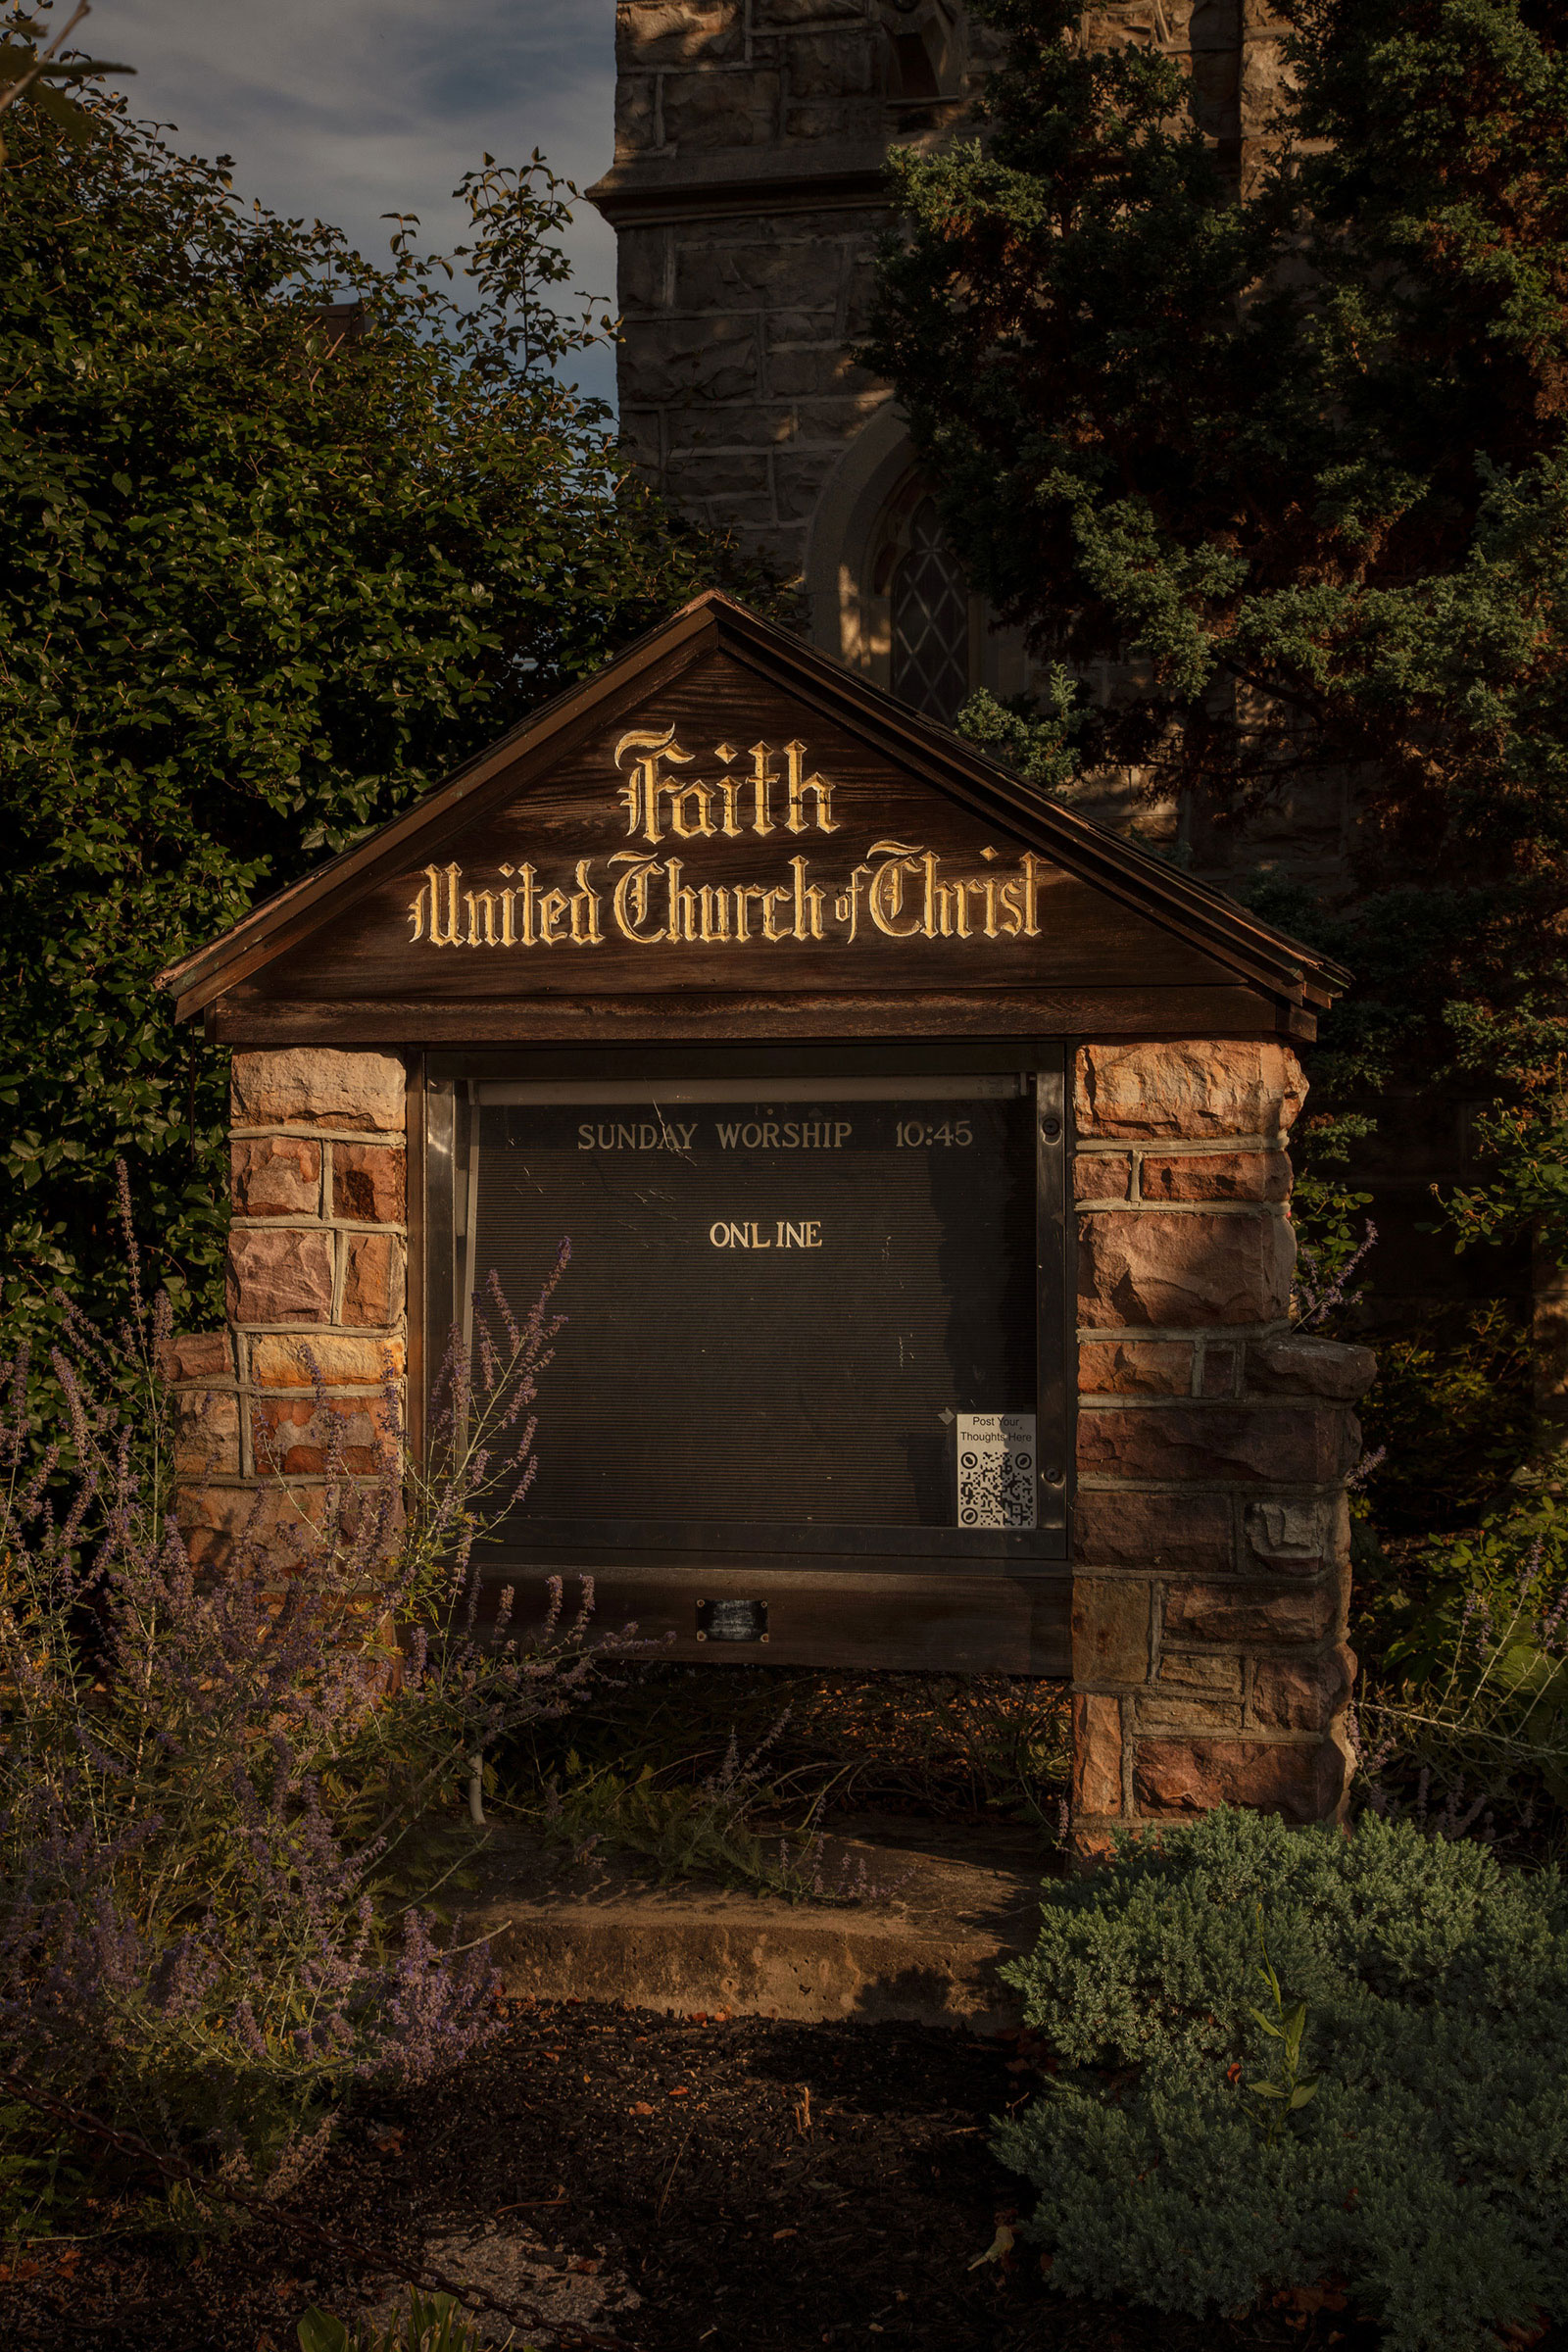 Faith United Church of Christ in State College, Pa.